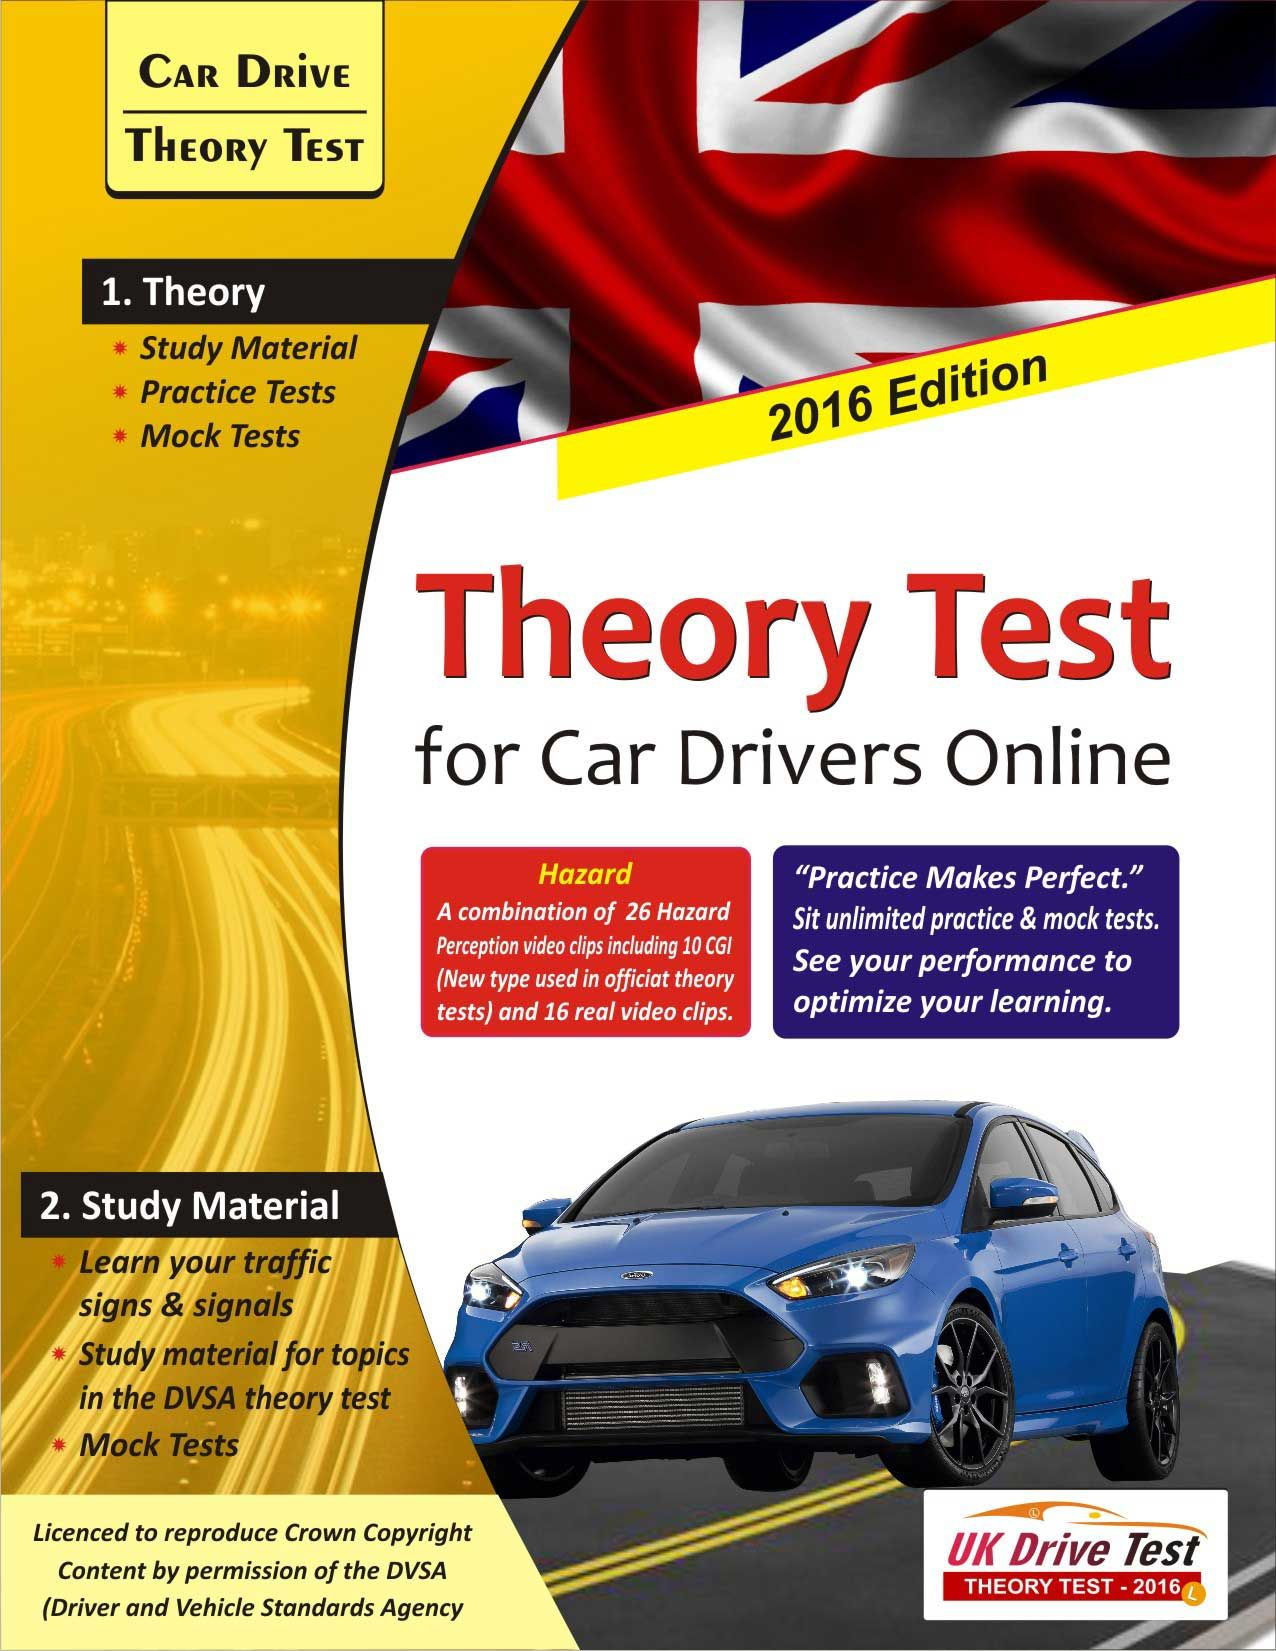 cpc module   explained with example case study  Old       YouTube Theory Test Study  Highway Code Study  Highway Code Quiz